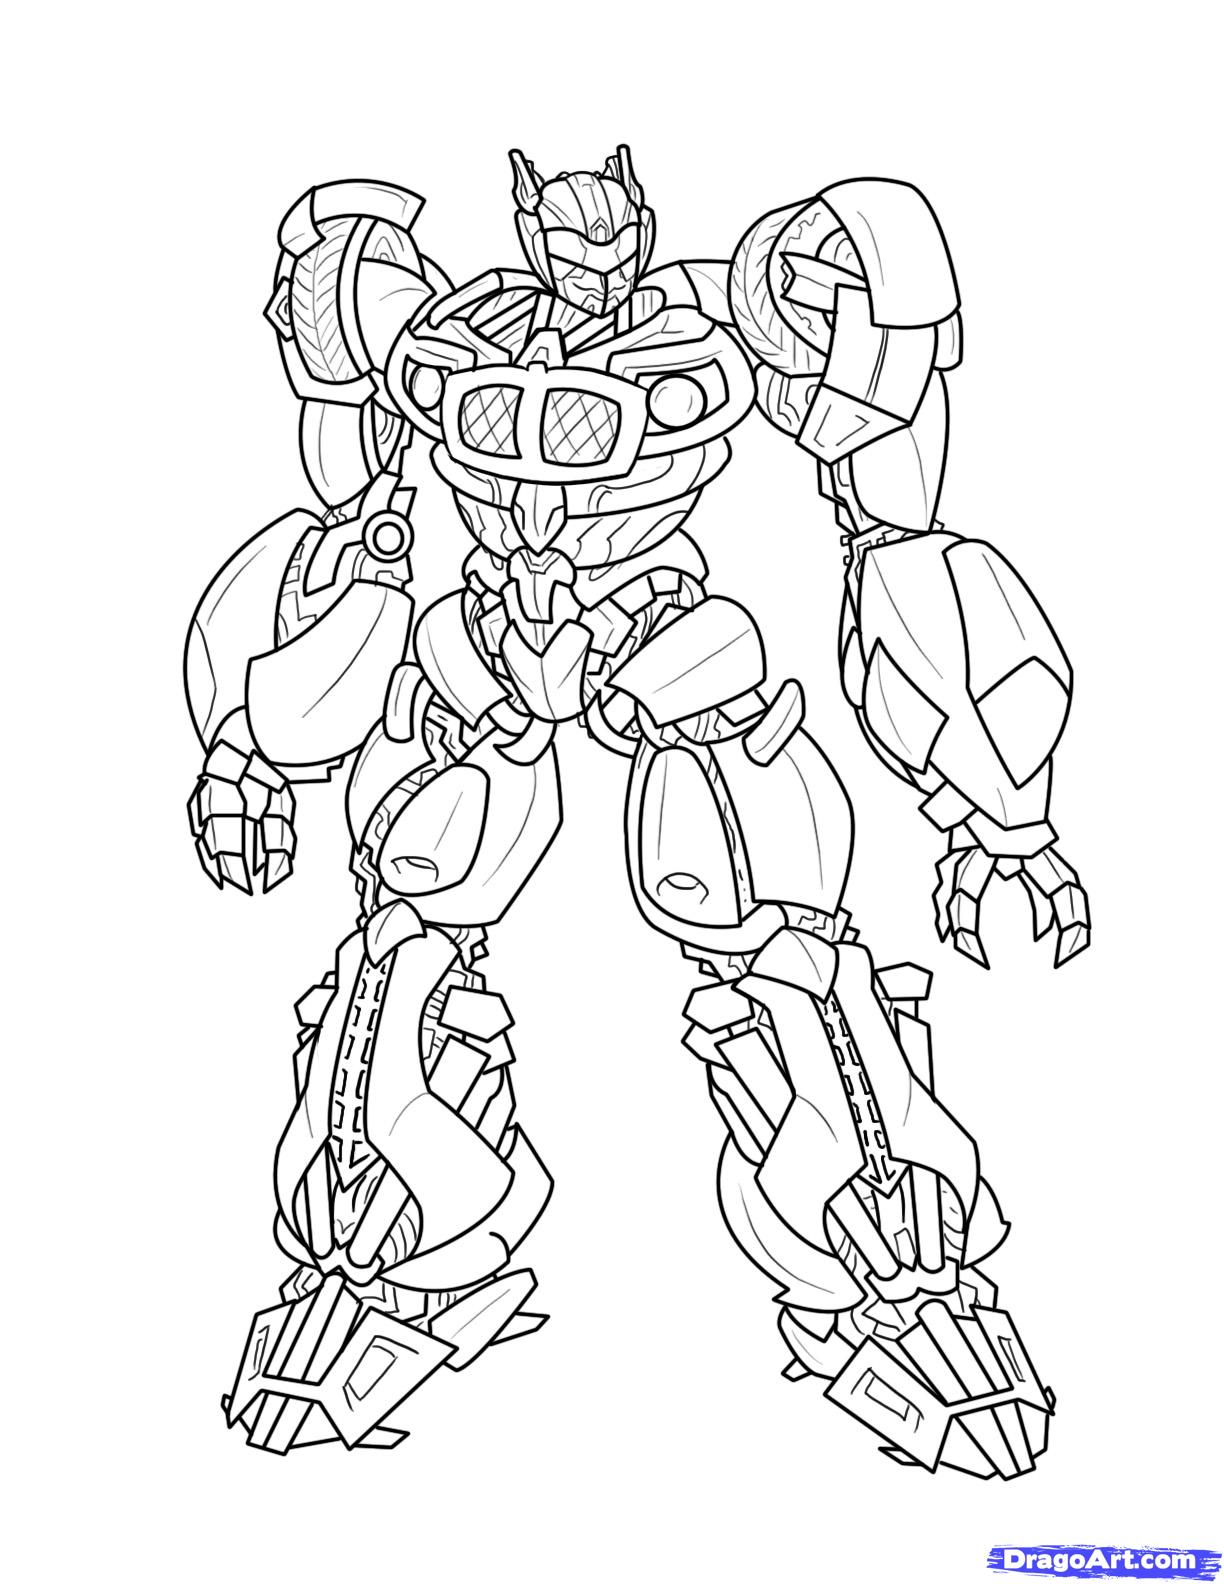 Transformer Drawing At GetDrawings Free For Personal Use Transformer Drawing 36 Transformer Drawing